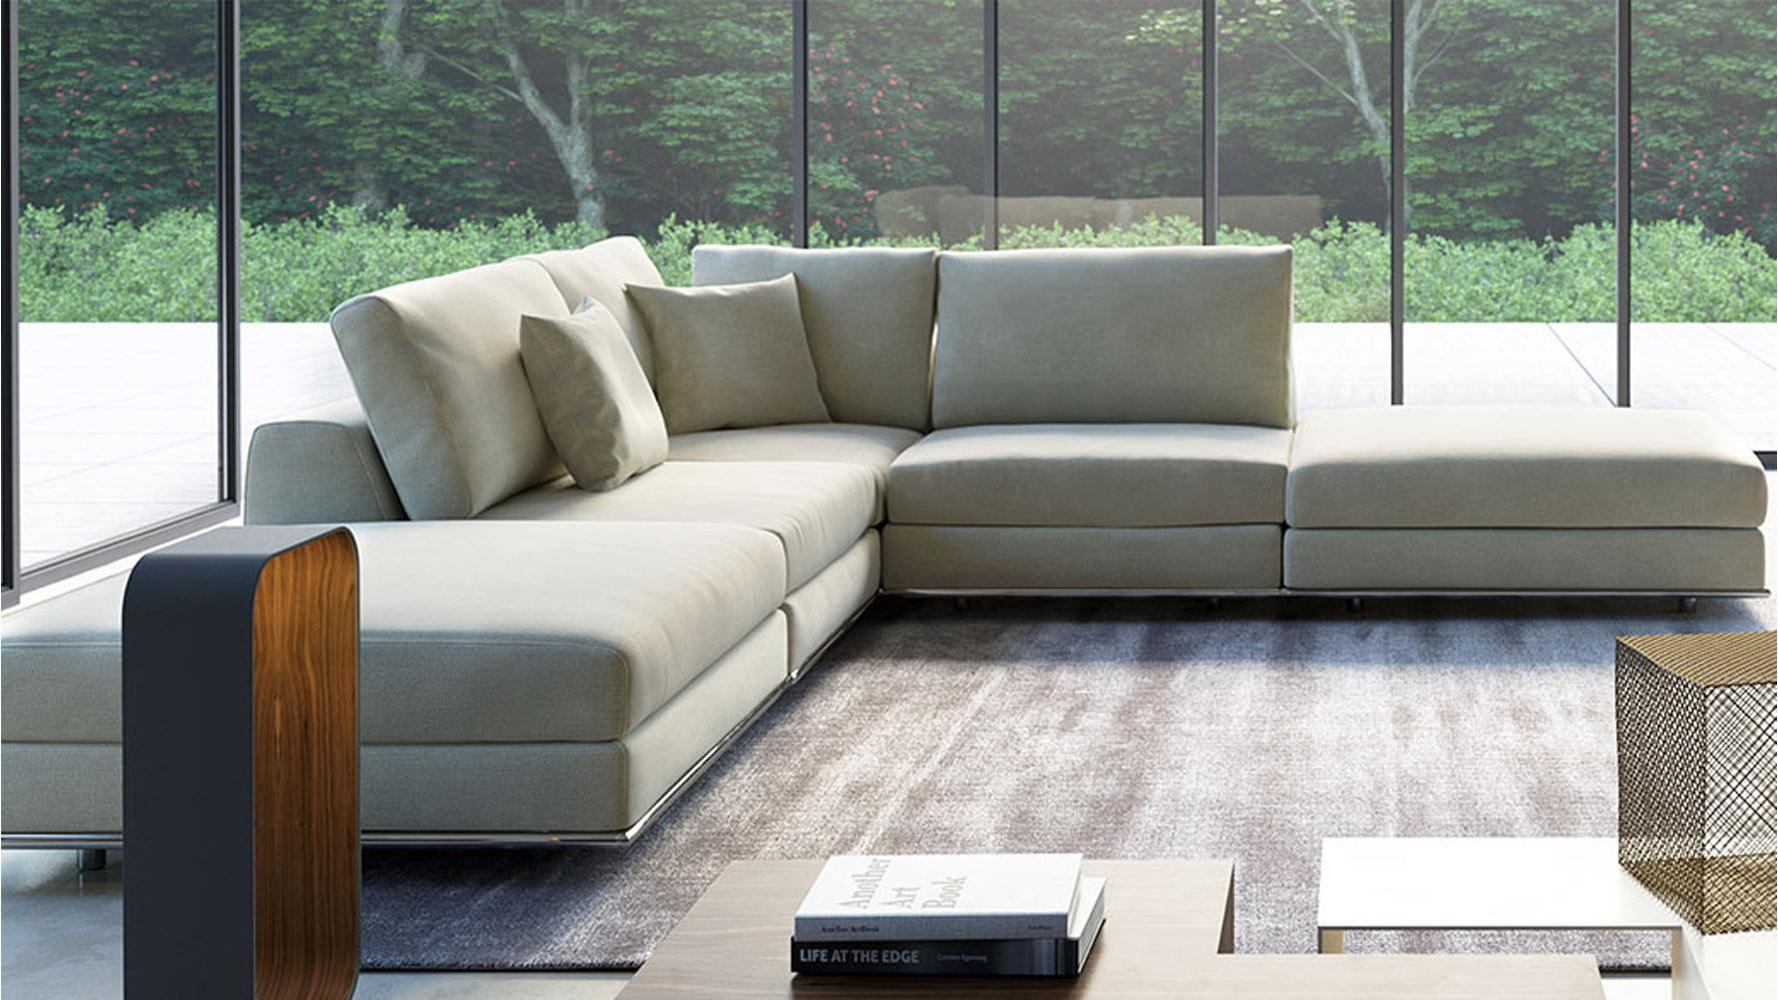 Modern Persis Armless Corner Sectional Sofa – Moonbeam | Zuri In Armless Sectional Sofas (View 2 of 15)